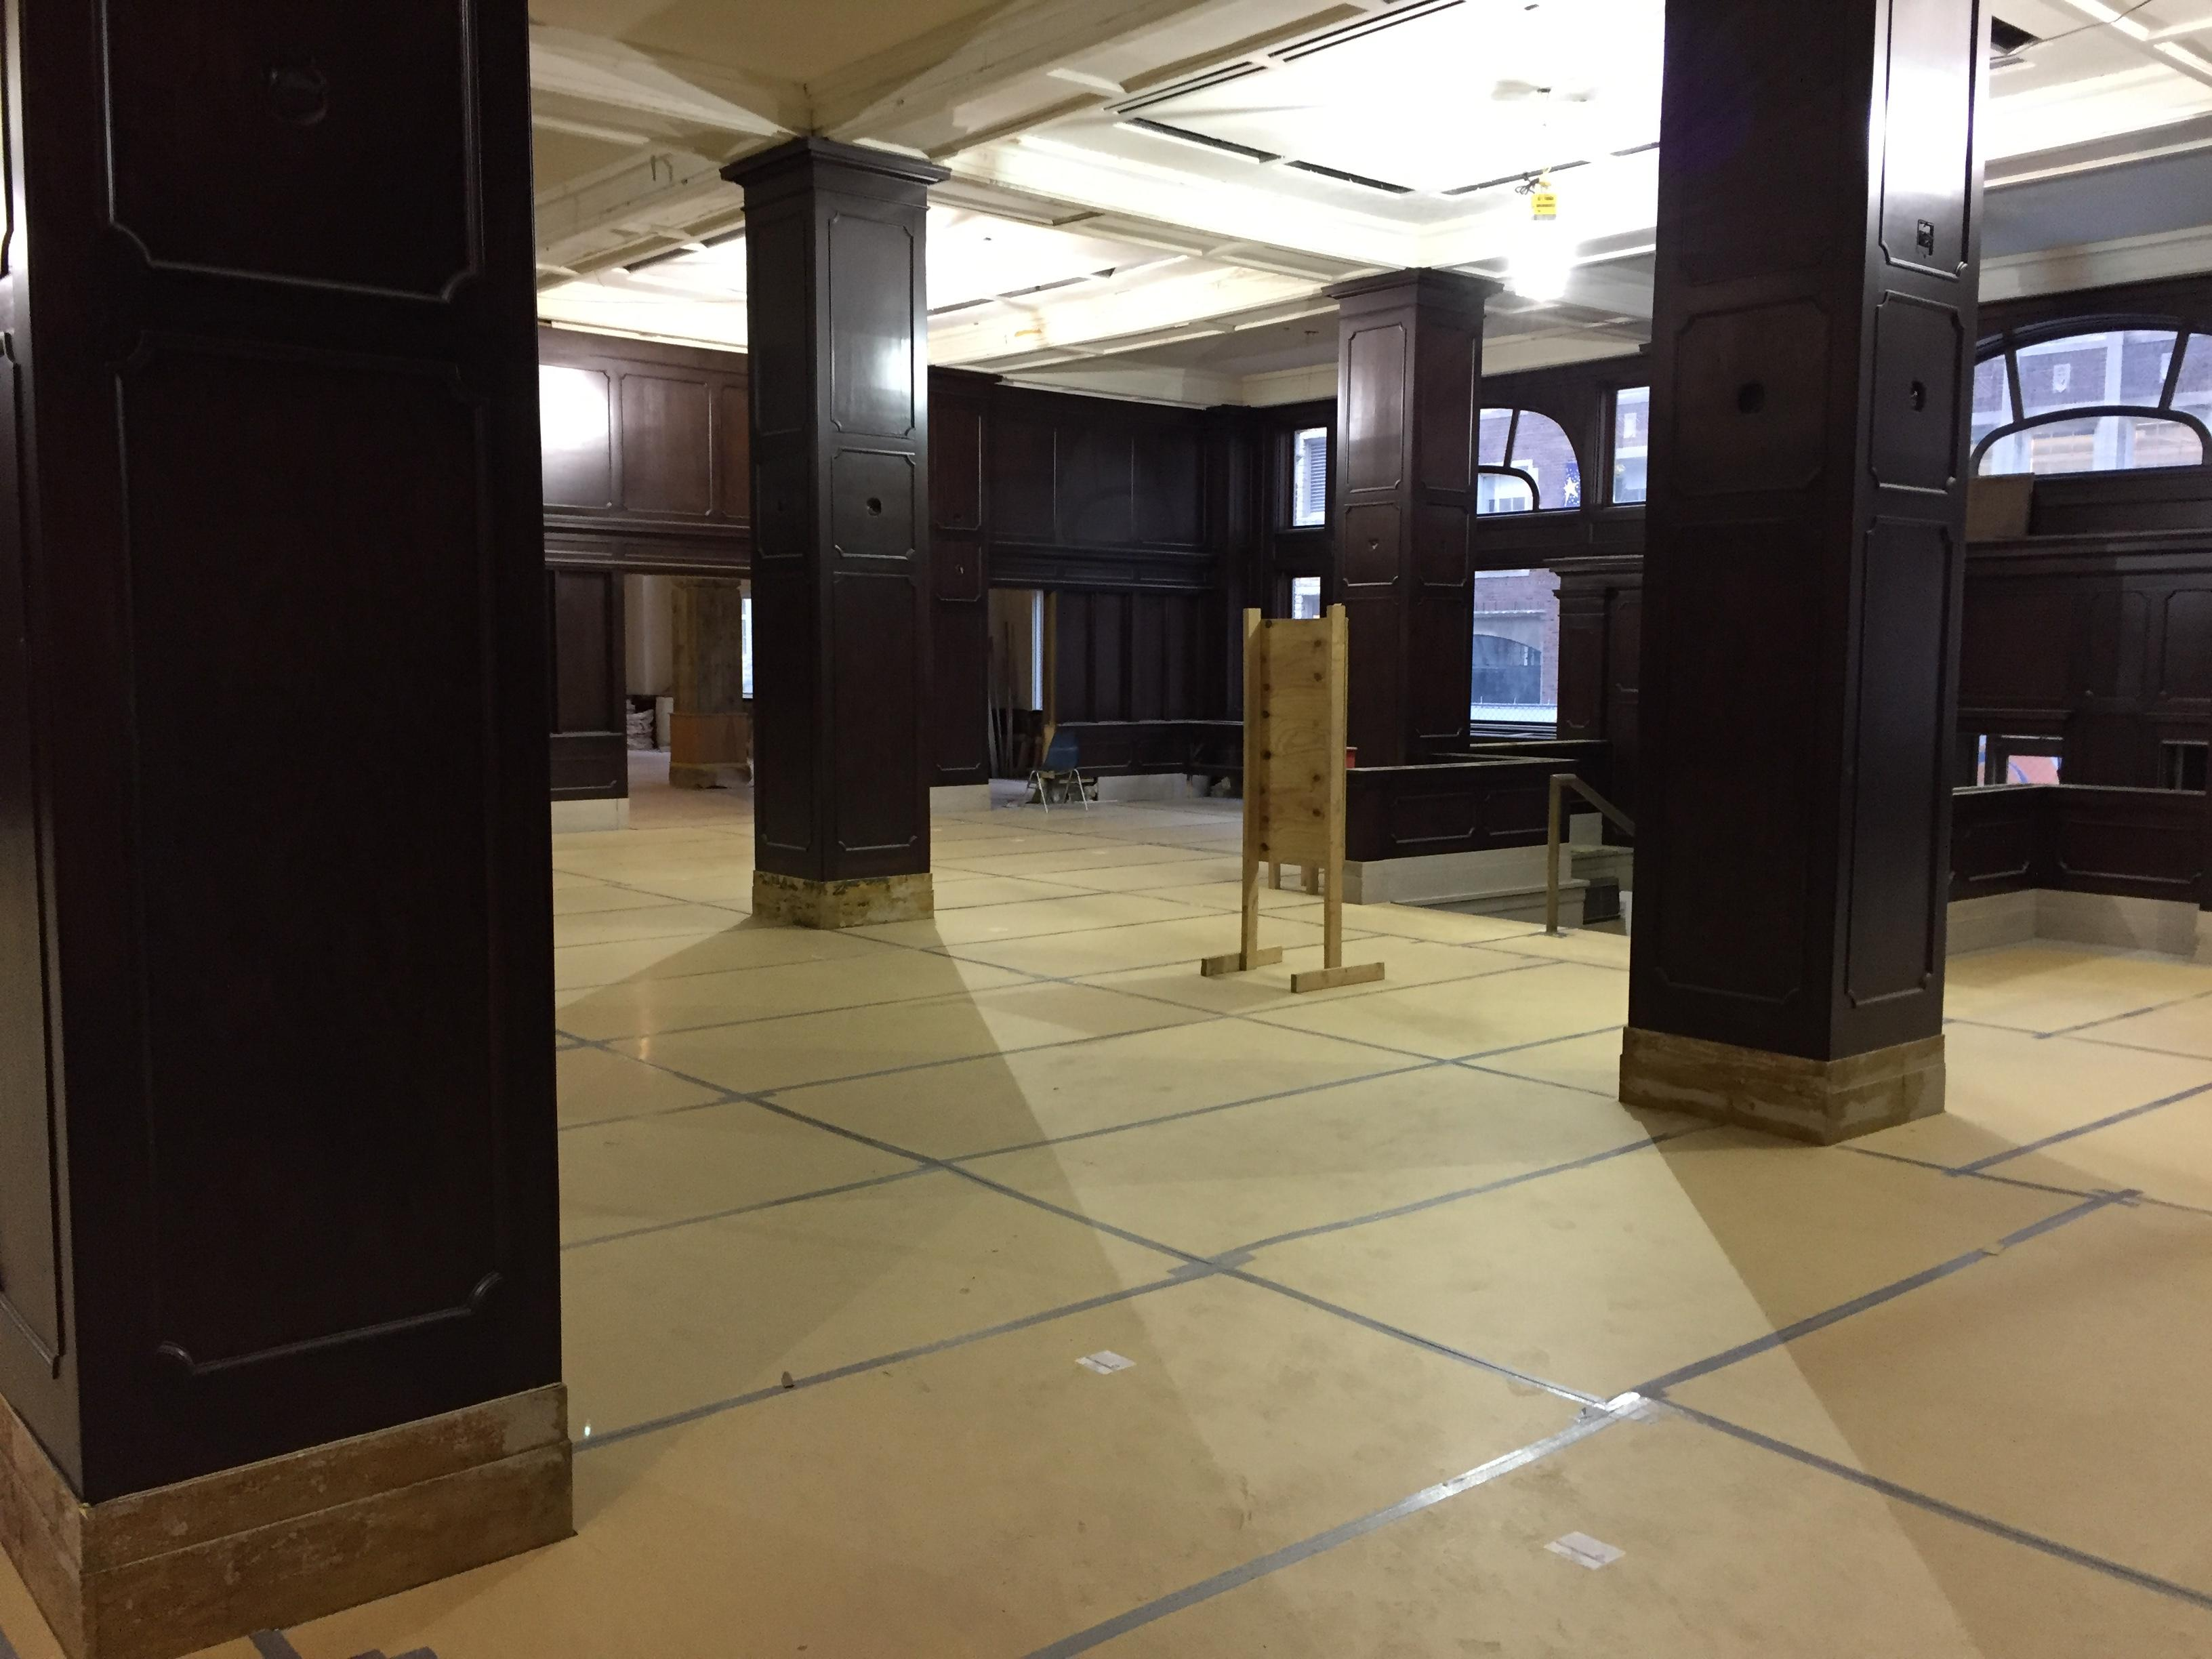 The lobby under construction in the Hotel Northland on January 11, 2018. (Photo credit: WLUK)